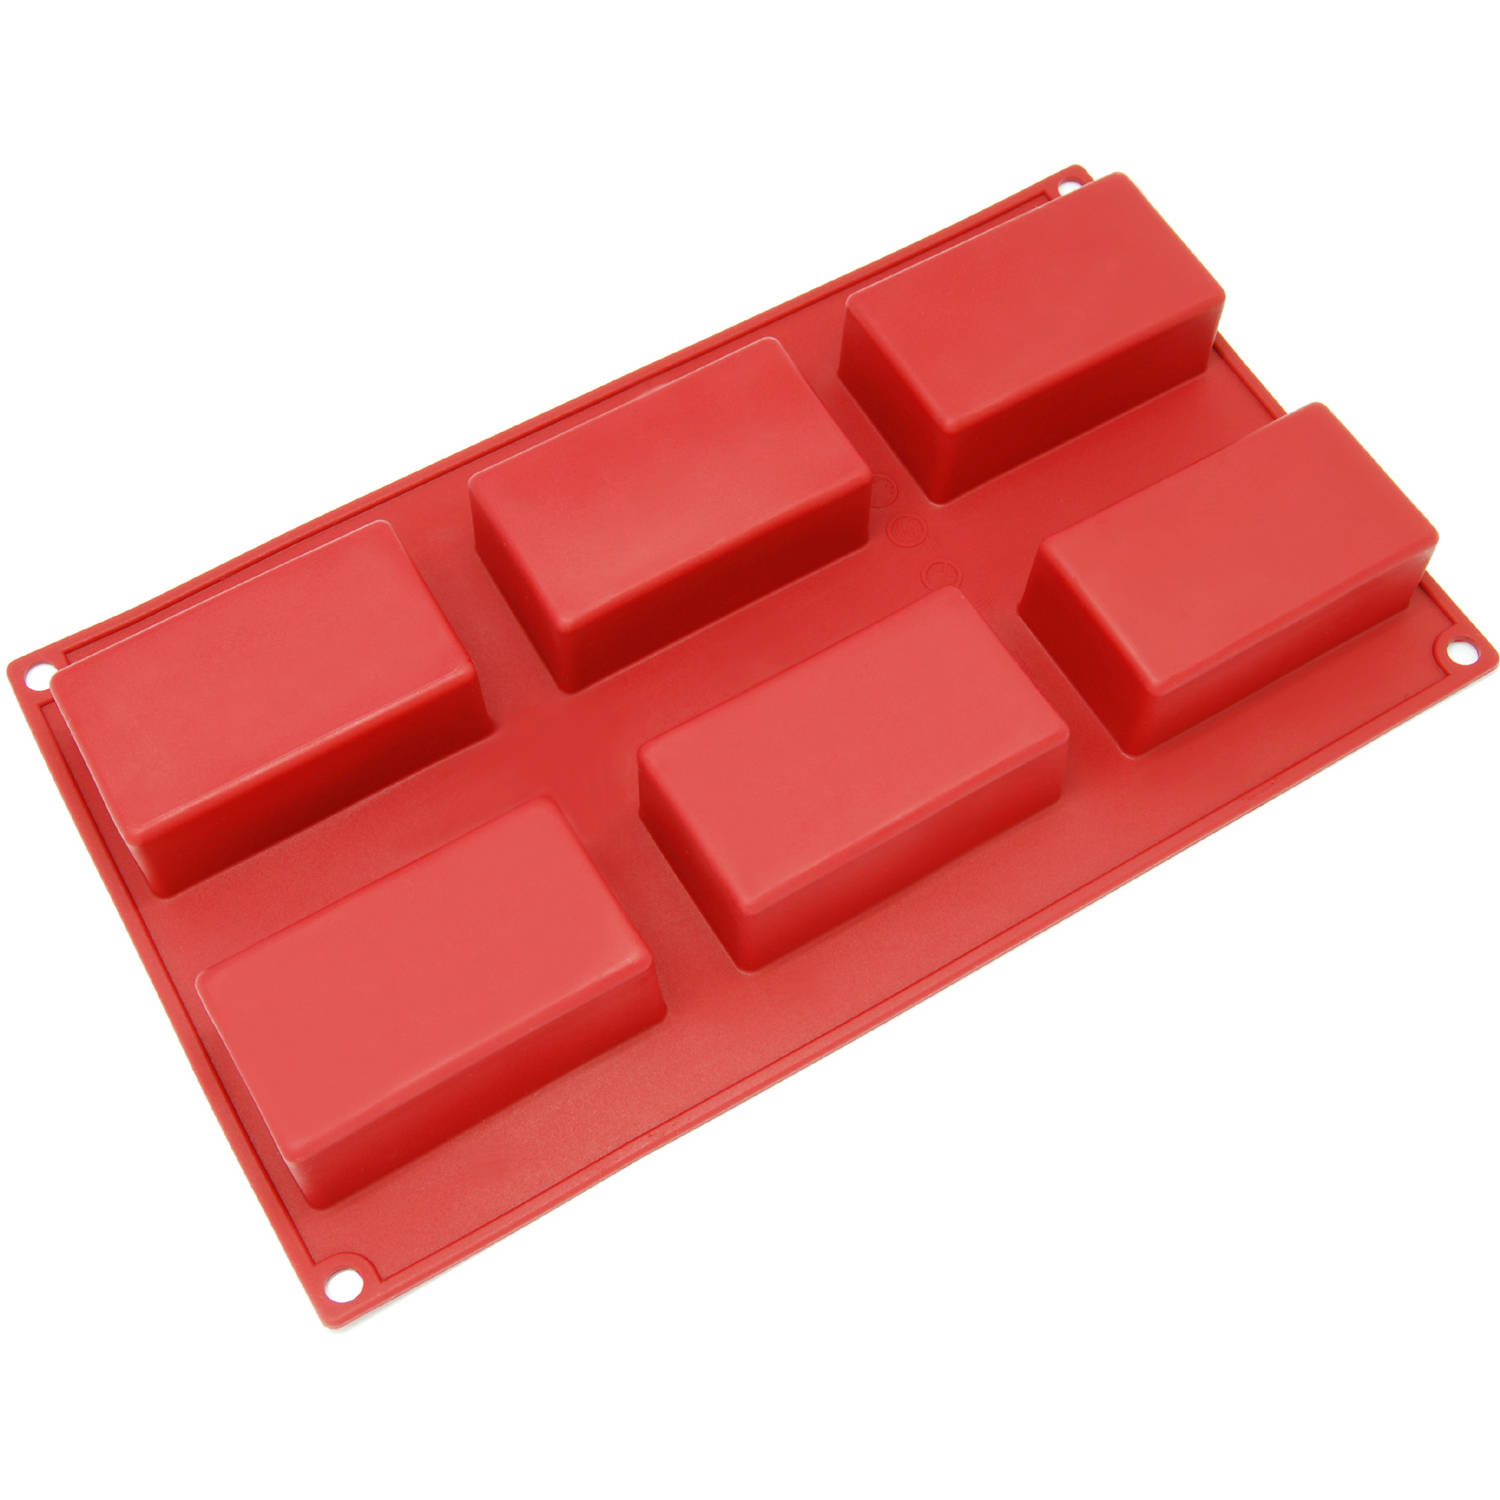 Freshware 6-Cavity Rectangle Silicone Mold for Muffin, Soap, Brownie, Cornbread, Cheesecake and Pudding, SL-131RD